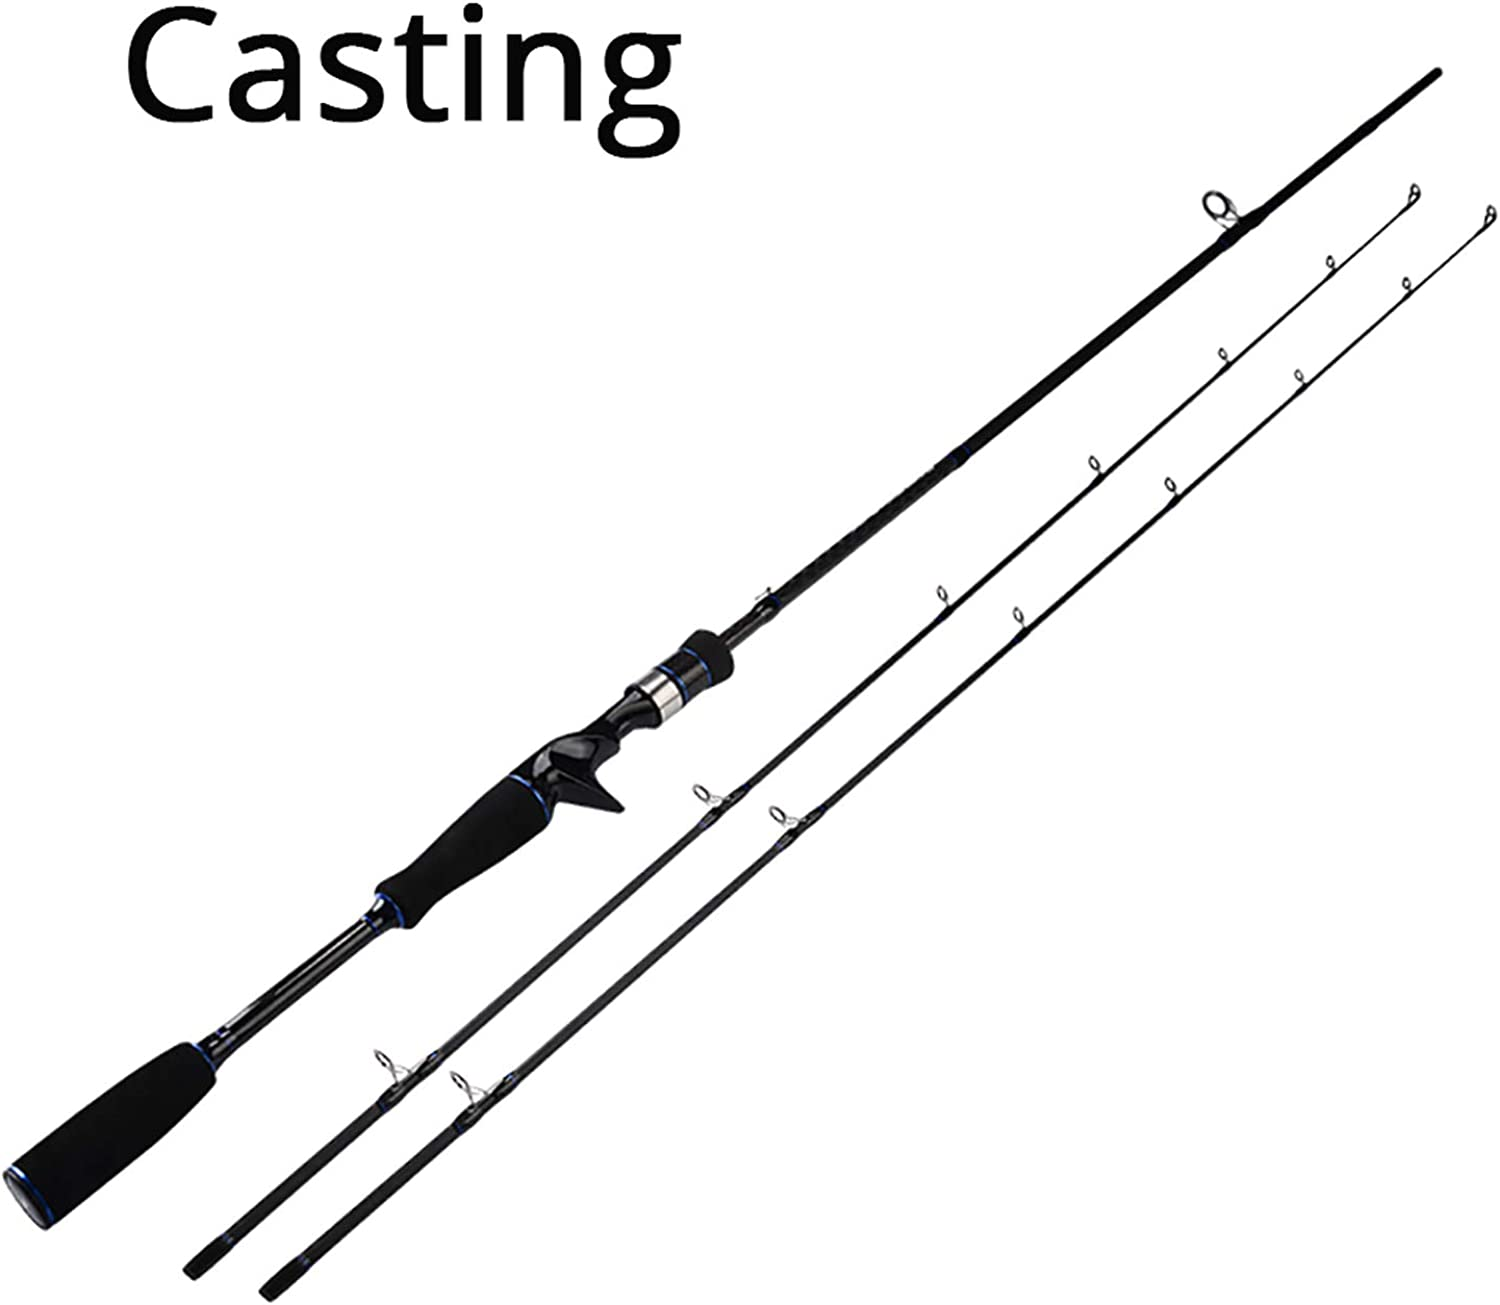 Cadet Ultralight Carbon Spinning Casting Fishing Rod with 2 Rod Tips 1.98m 2.10m Baitcasting Rod,White,2.1 m